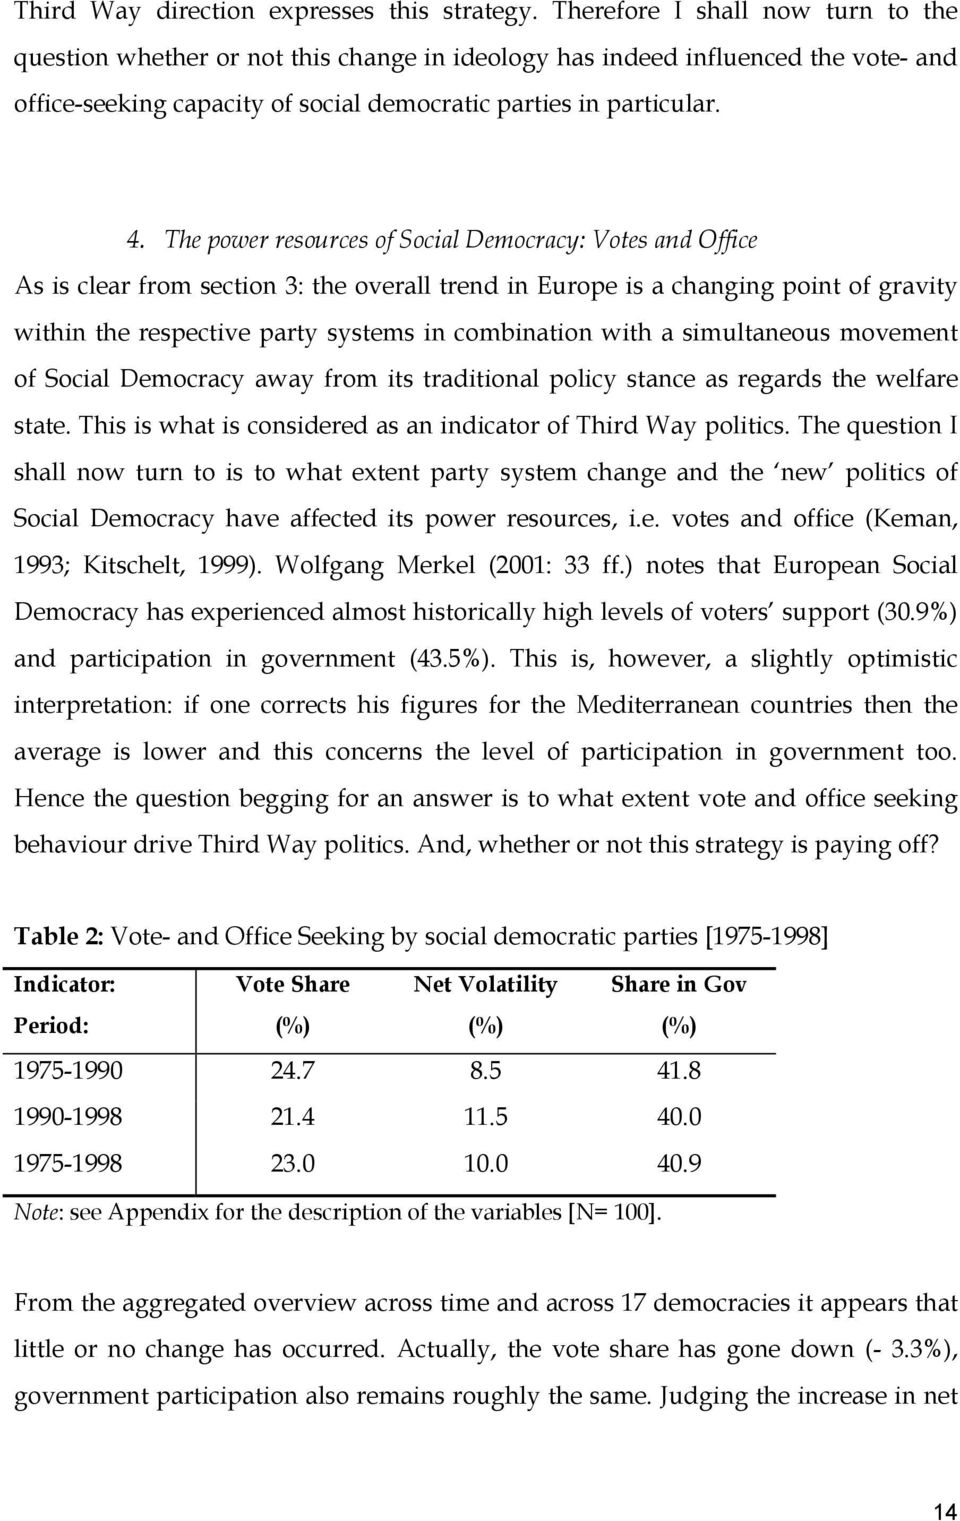 The power resources of Social Democracy: Votes and Office As is clear from section 3: the overall trend in Europe is a changing point of gravity within the respective party systems in combination